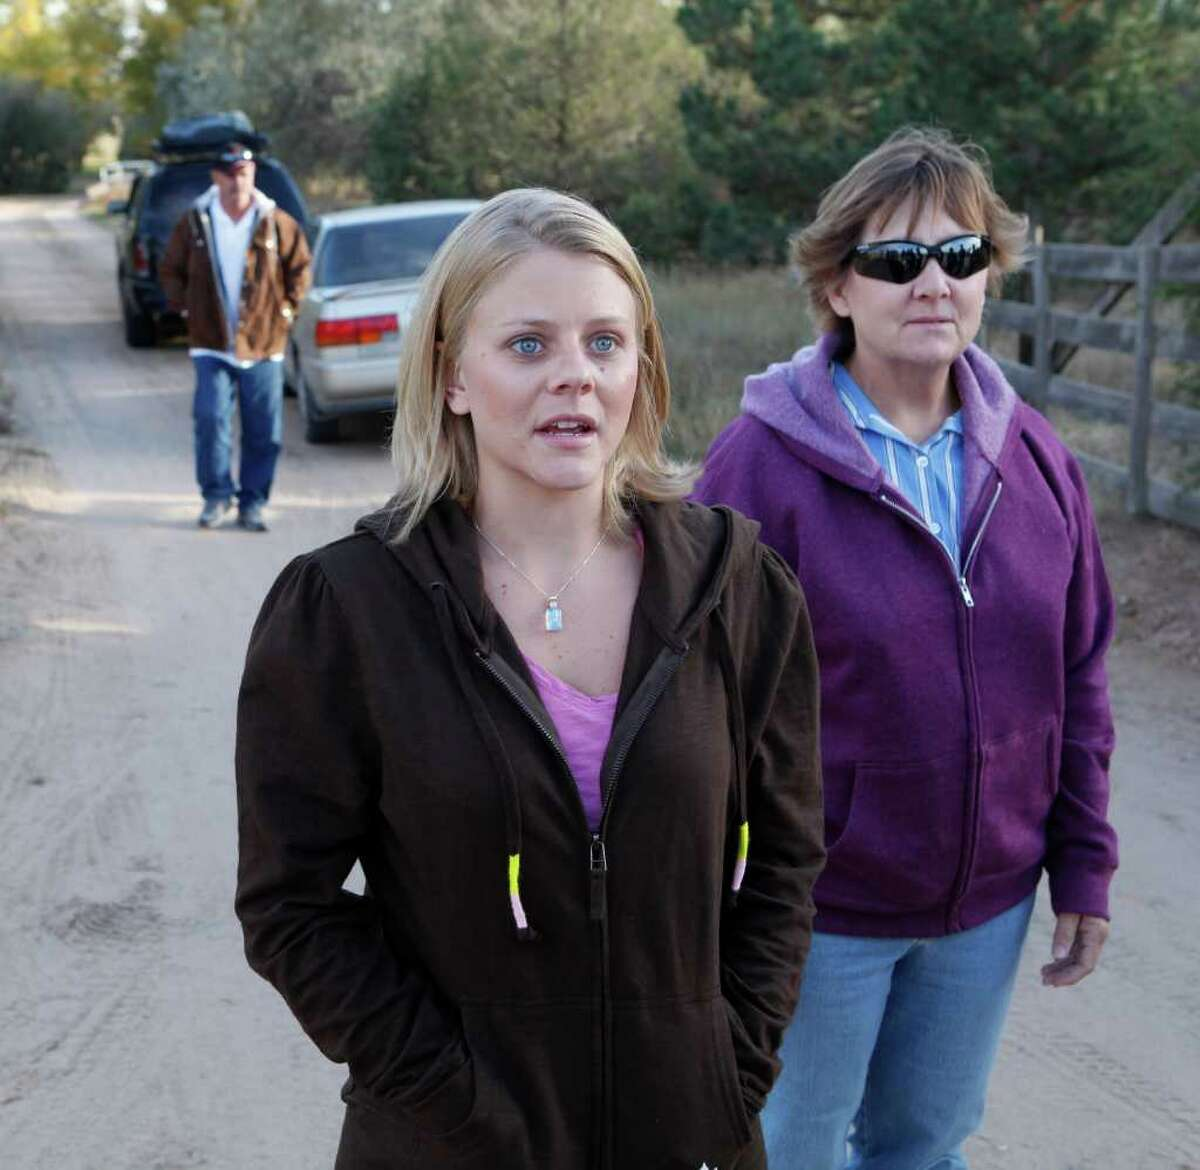 Tiffany Hartley, center, arrives at her parents home in LaSalle, Colo., on Saturday, Oct. 23, 2010, with her mom Cynthia, right, and father Bob Young, left, after riding with them from Texas. Hartley's husband was shot and believed killed while the couple were jet skiing on Falcon Lake last month. David Hartley's body has not been recovered.